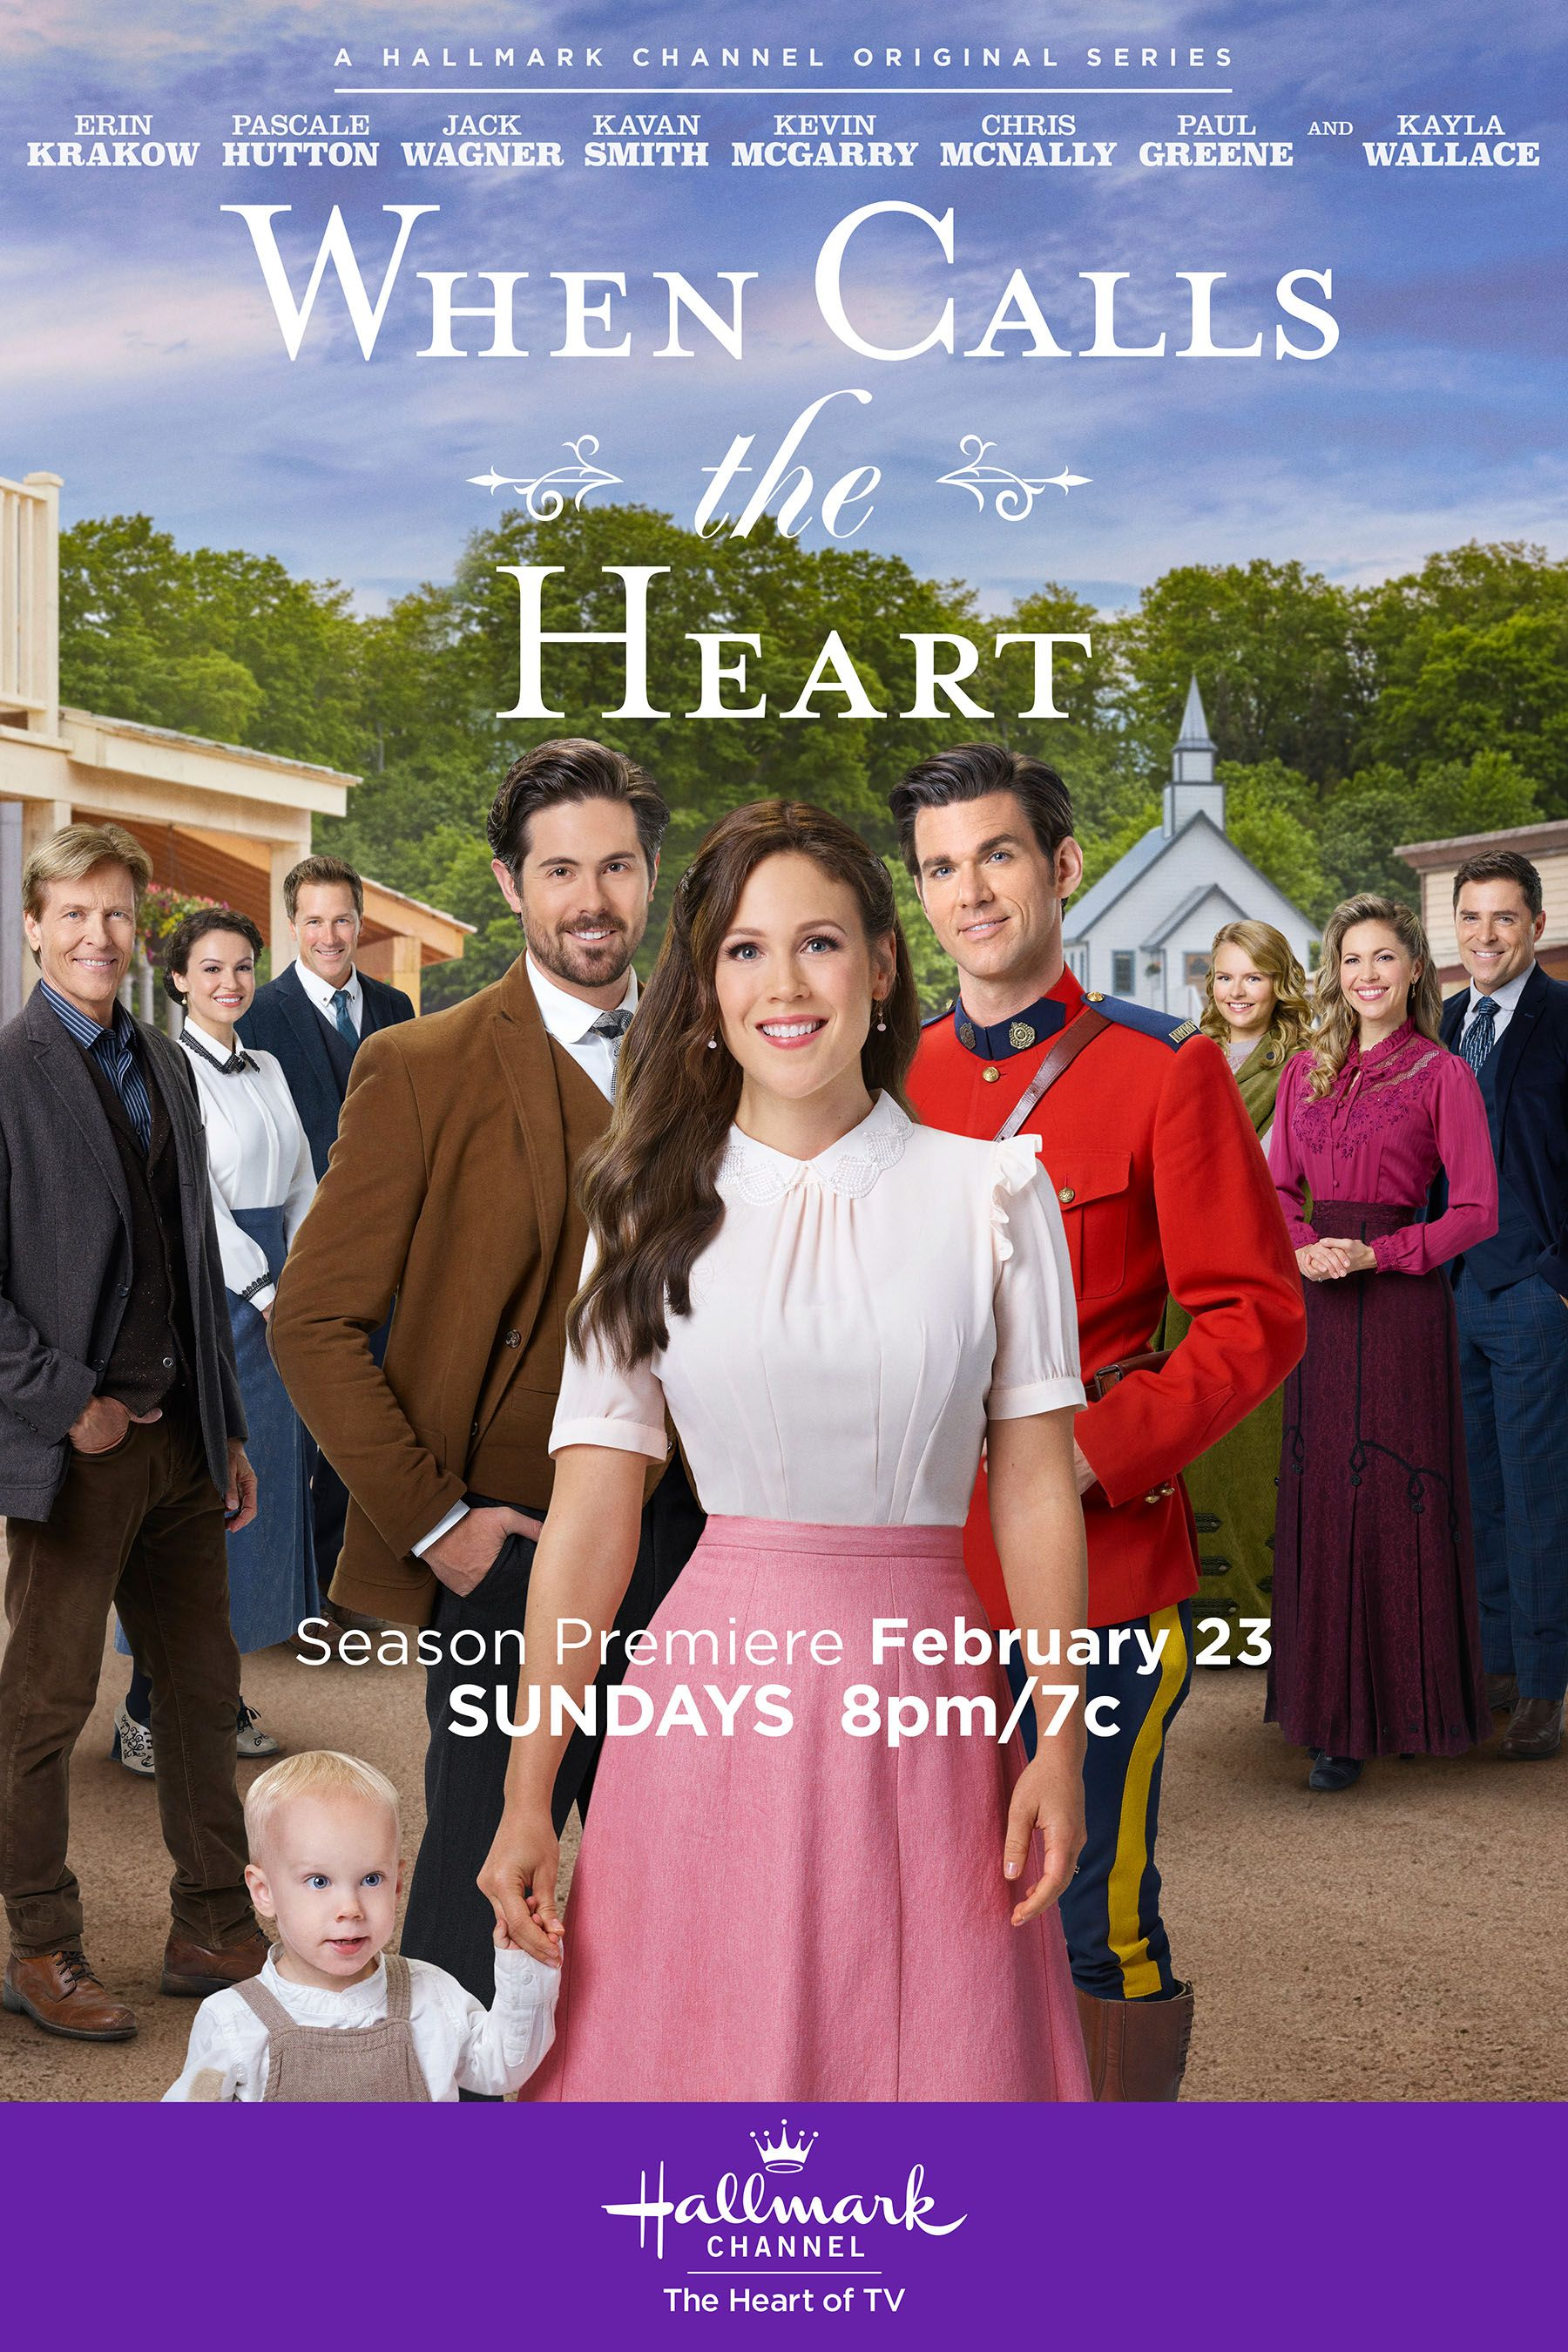 Christmas When Calls The Heart 2020 When Calls the Heart, Season 7 premieres on February 23, only on